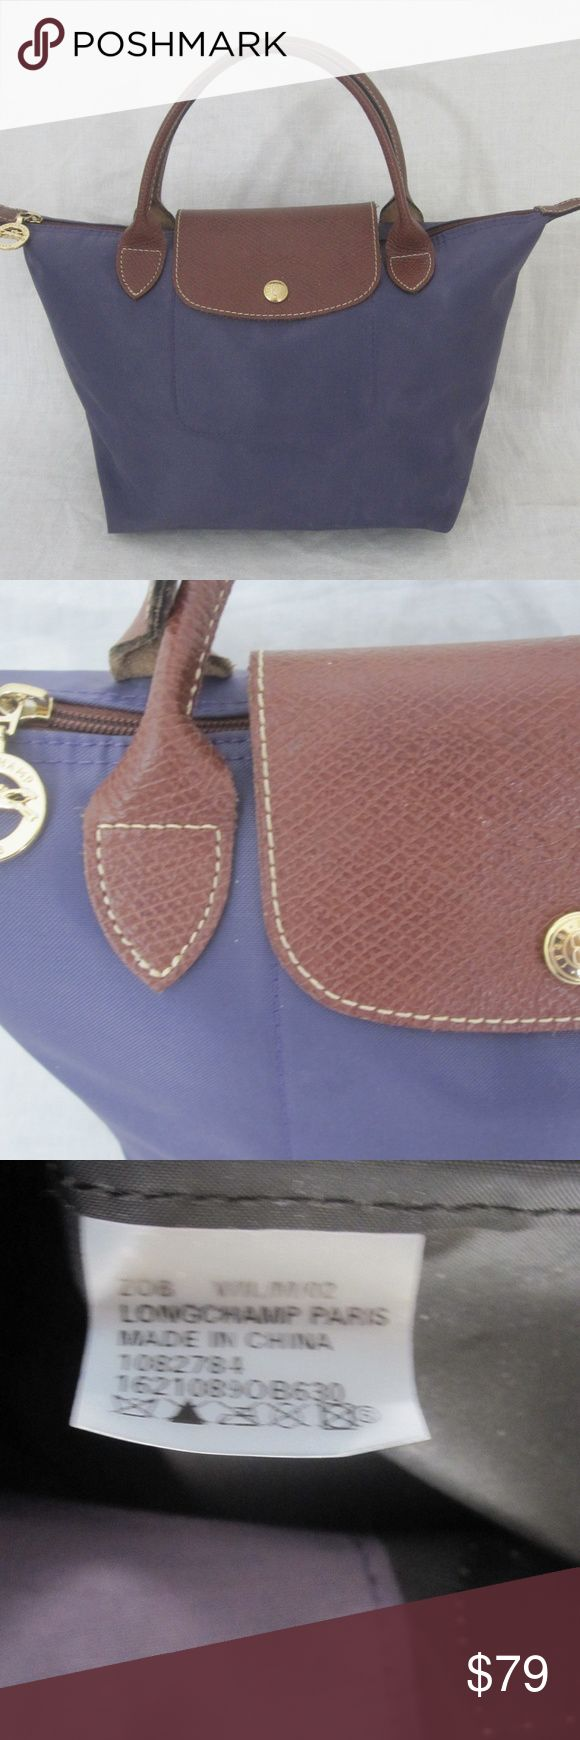 """LONGCHAMP PURPLE LE PLIAGE MODELE DEPOSE HANDBAG THIS IS A NICE LOOKING LONGCHAMP PURPLE CANVAS & LEATHER TRIM   LE PLIAGE MODELE DEPOSE HANDBAG. IT IS 100% AUTHENTIC.  THIS NICE LOOKING BAG WAS PRE OWNED, AND IT'S IN VERY GOOD CONDITION.   THERE ARE NO MAJOR FLAWS TO REPORT, SEE PICTURES.   THE BAG HAS A VERY FEW SMALL MARKS ON THE BODY FROM LIGHT NORMAL WEAR.  AND THERE ARE A FEW DOT MARKS ON THE INSIDE, SEE PICTURES. (HARD TO SEE)  THE BAG MEASURES APPROX: 12""""L X 8""""H X 6""""W, THE HANDLE…"""